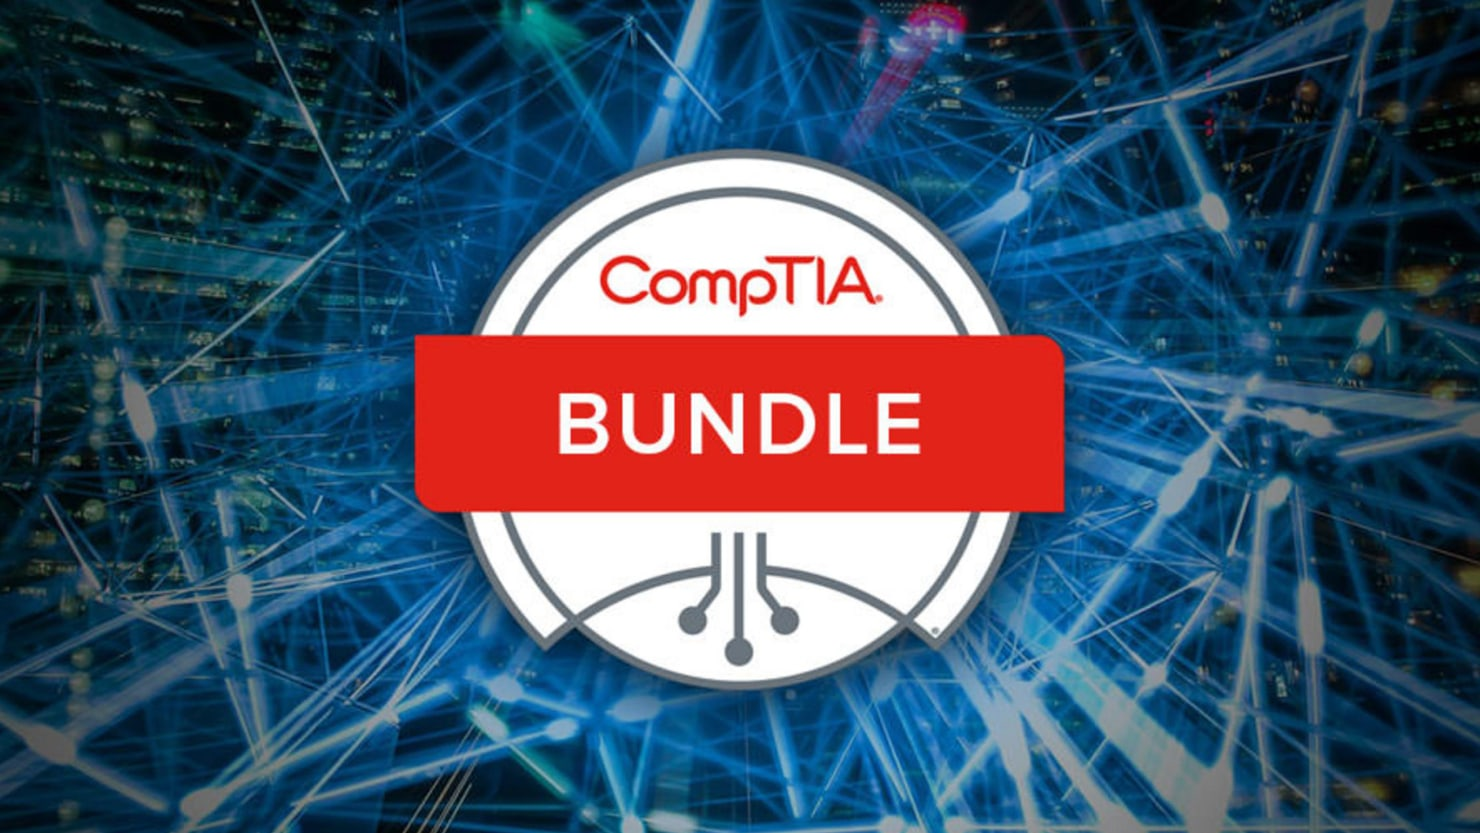 Launch A Career In It By Earning Comptia Certification With These